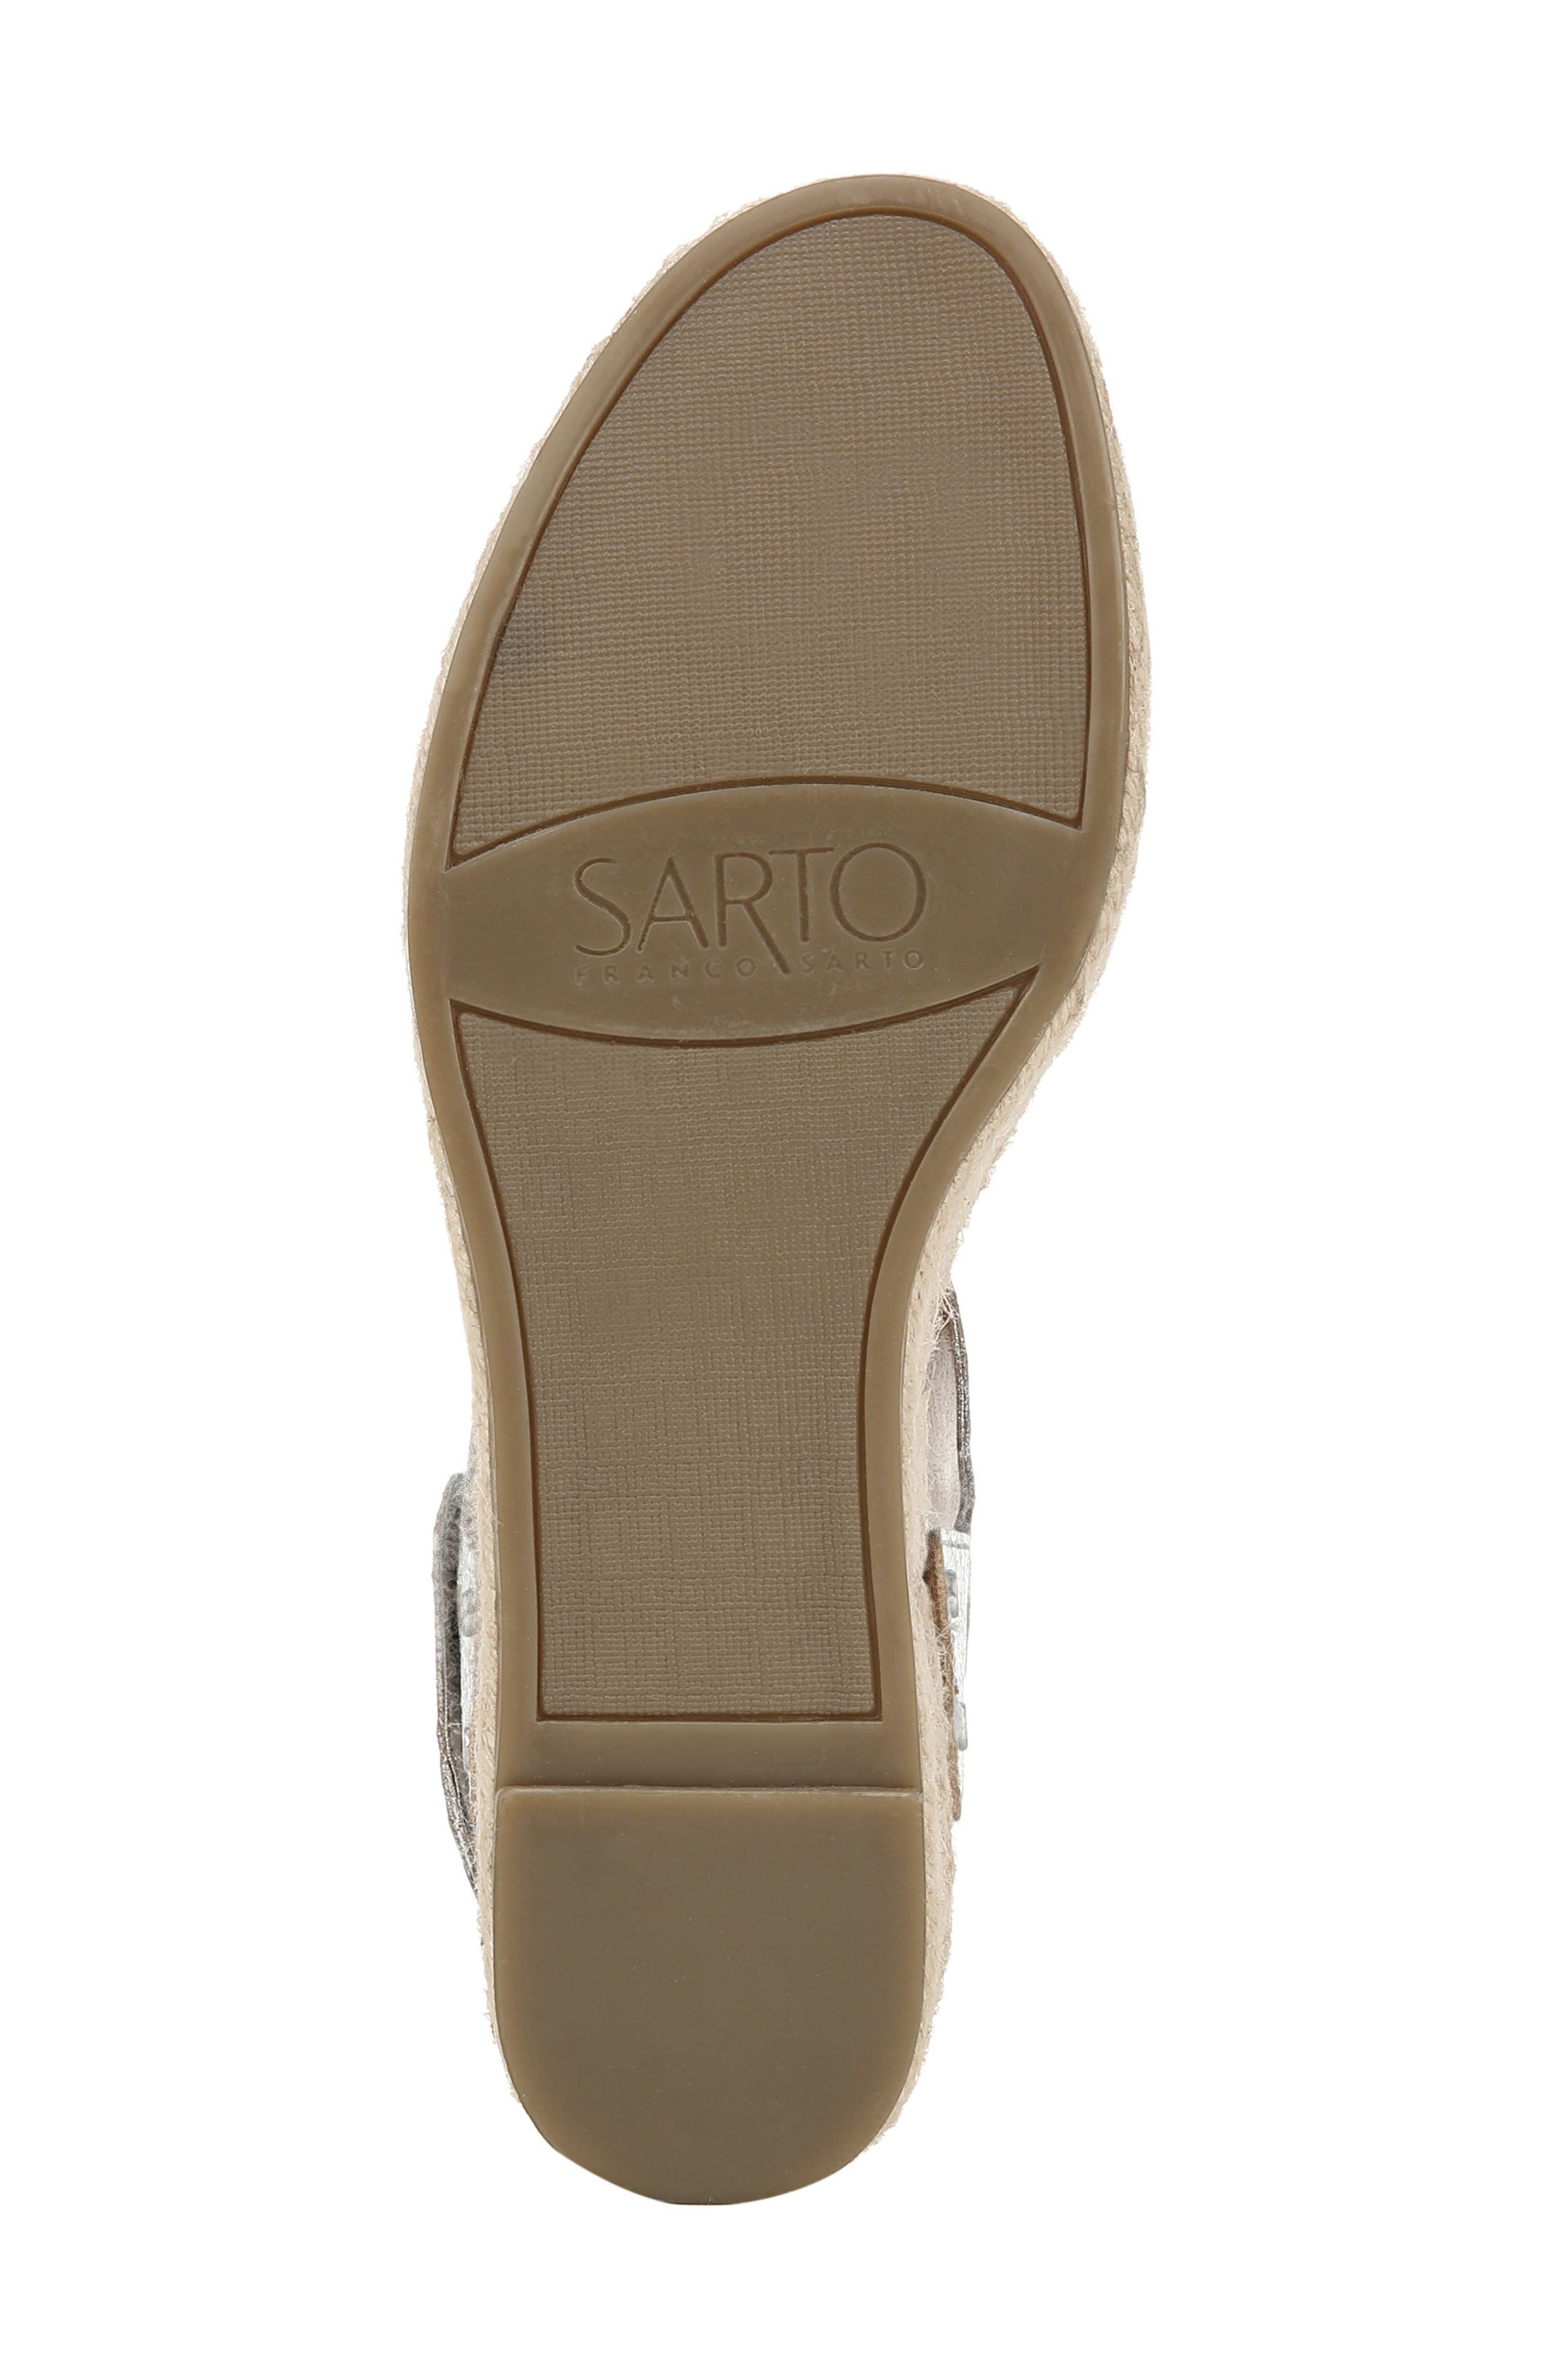 SARTO BY FRANCO SARTO, Leo Platform Espadrille Sandal, Alternate thumbnail 6, color, SILVER LEATHER